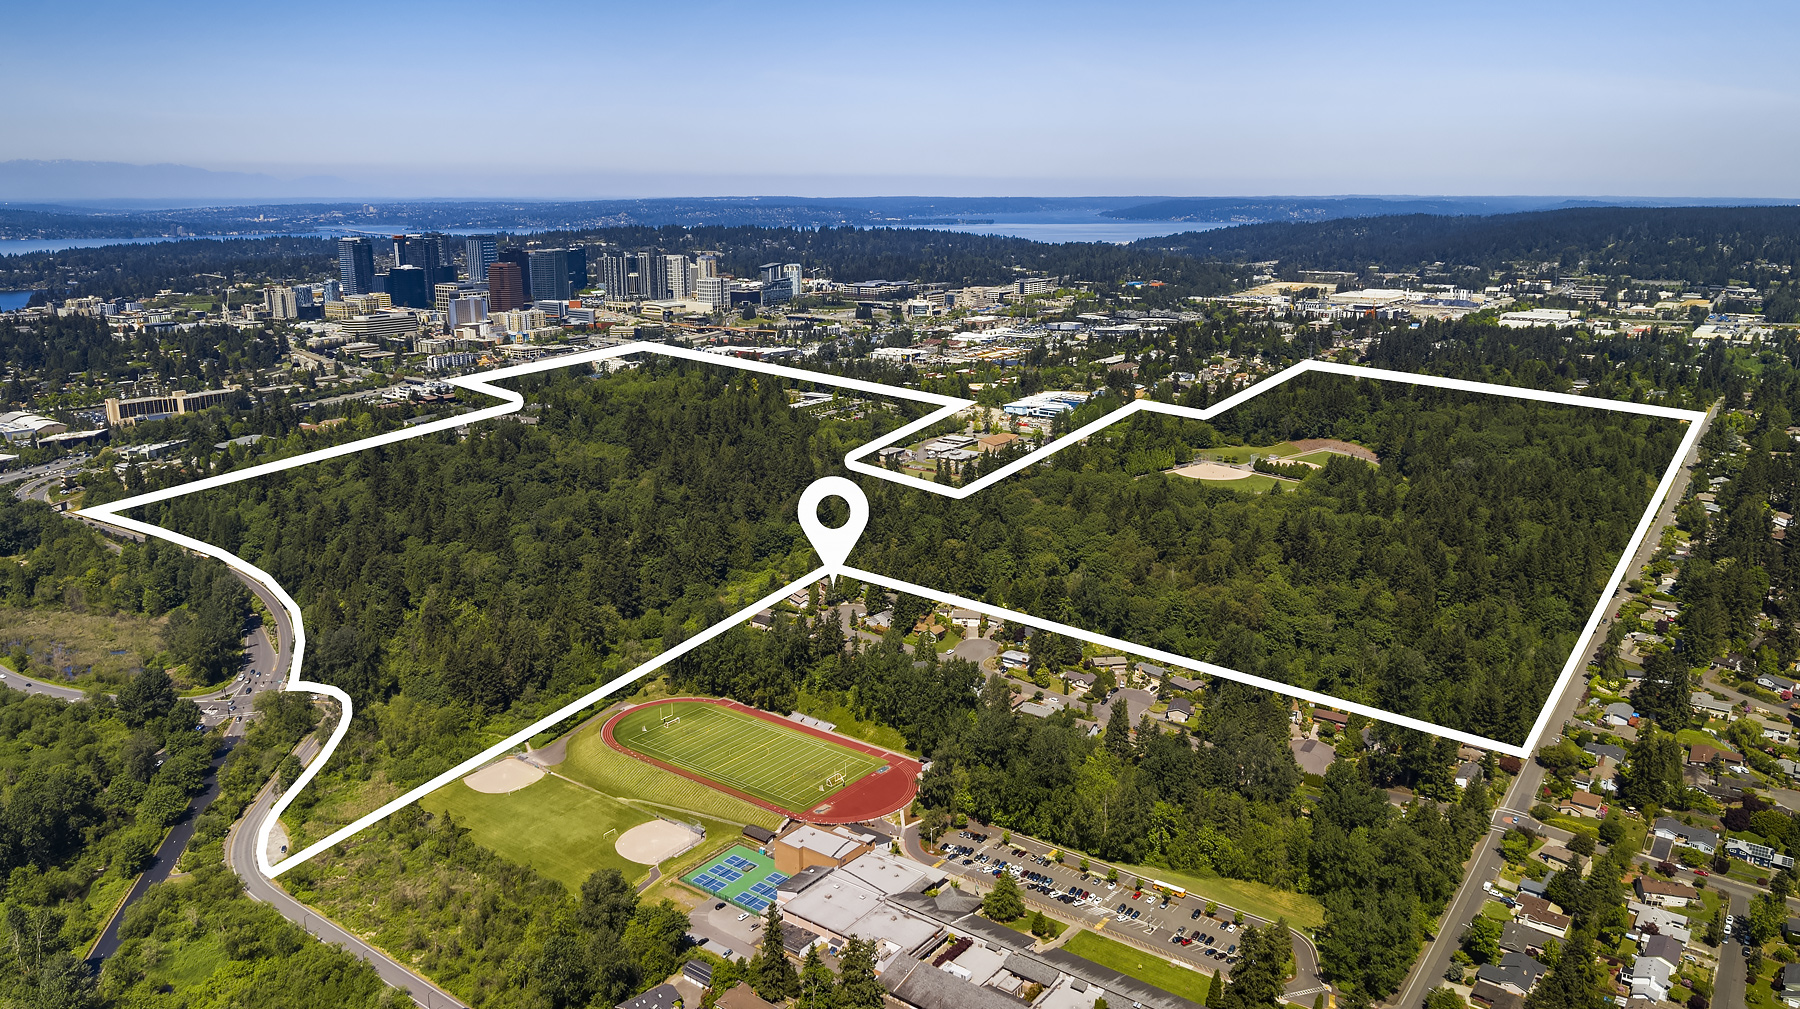 Walk out your back yard onto trails within the 100+ acrea Wilburton Hill Park and Bellevue Botanical Garden. Miles of trails to explore, along with ball fields and playgrounds.